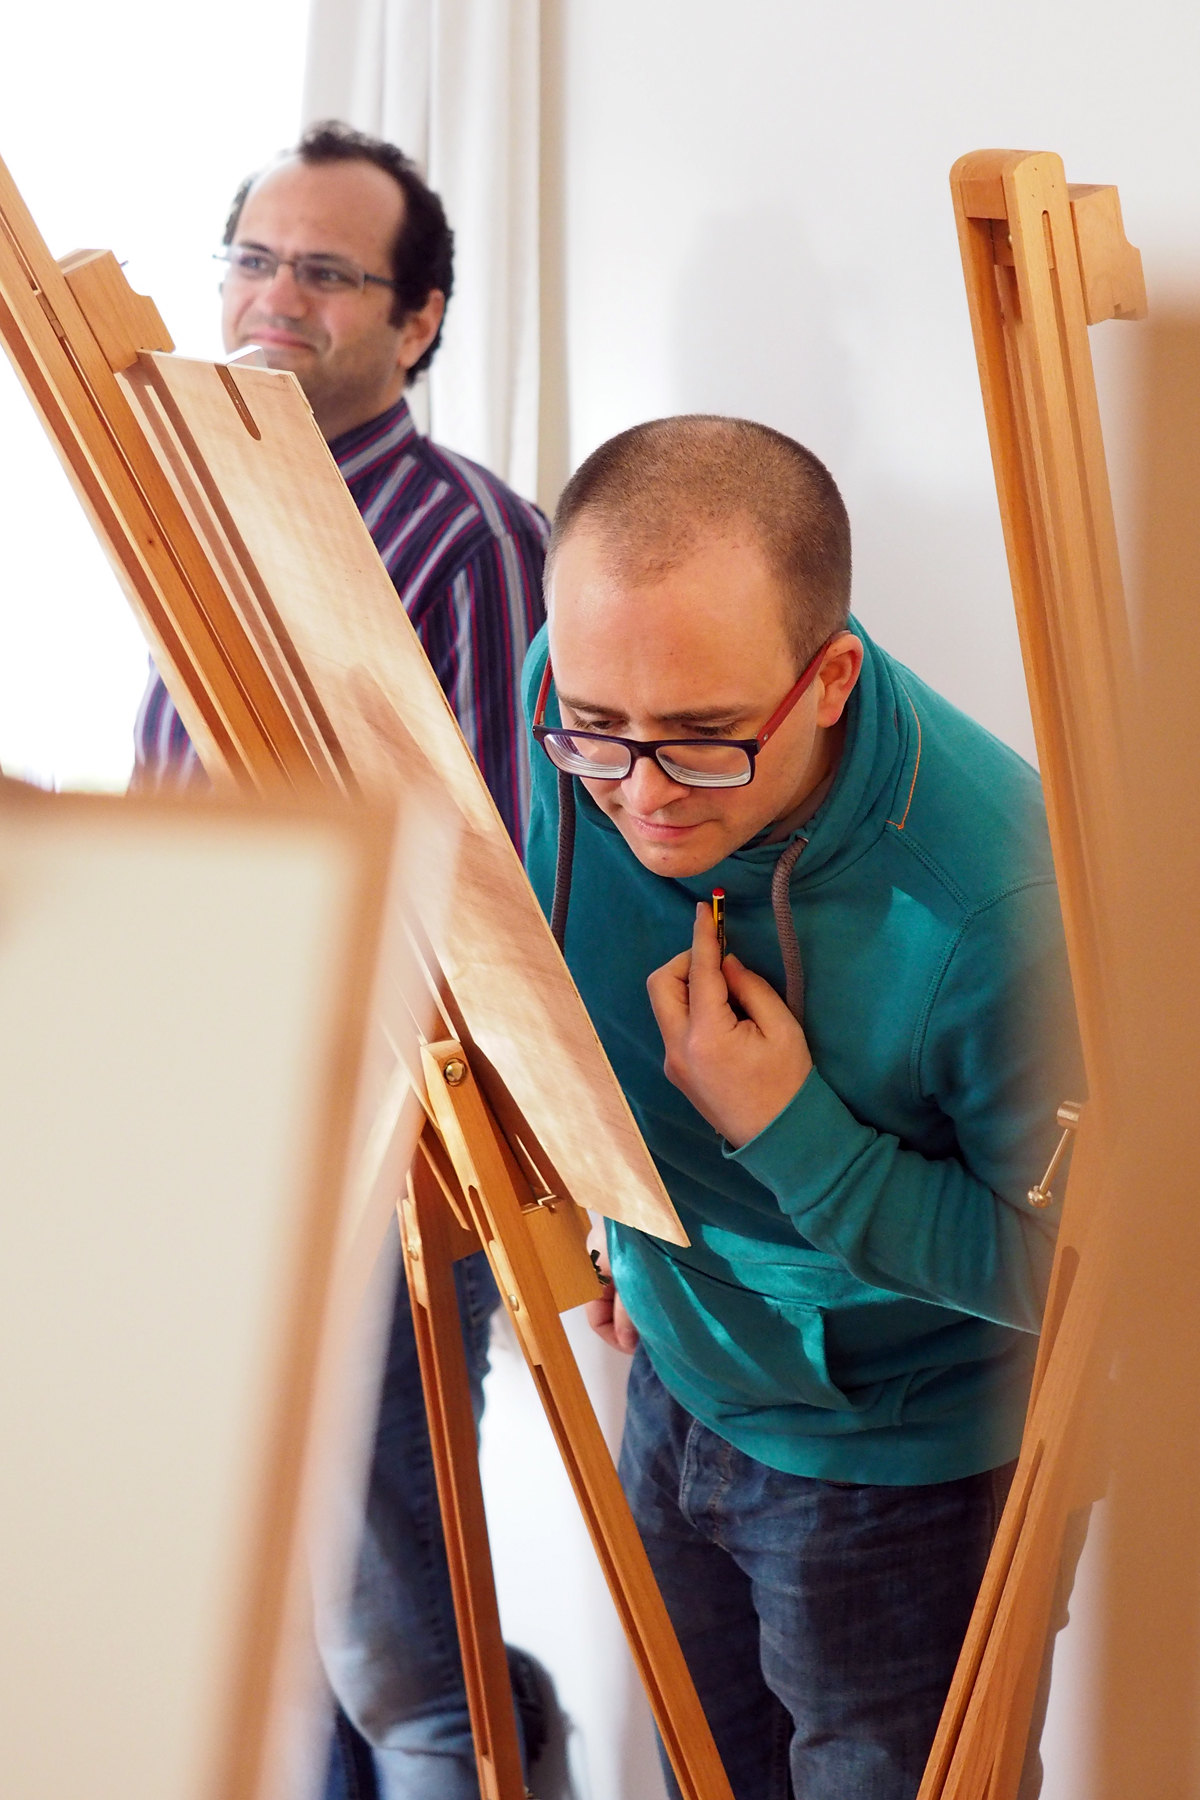 Creative Thinking for Business Teams by WorkingArtRoom - art in London